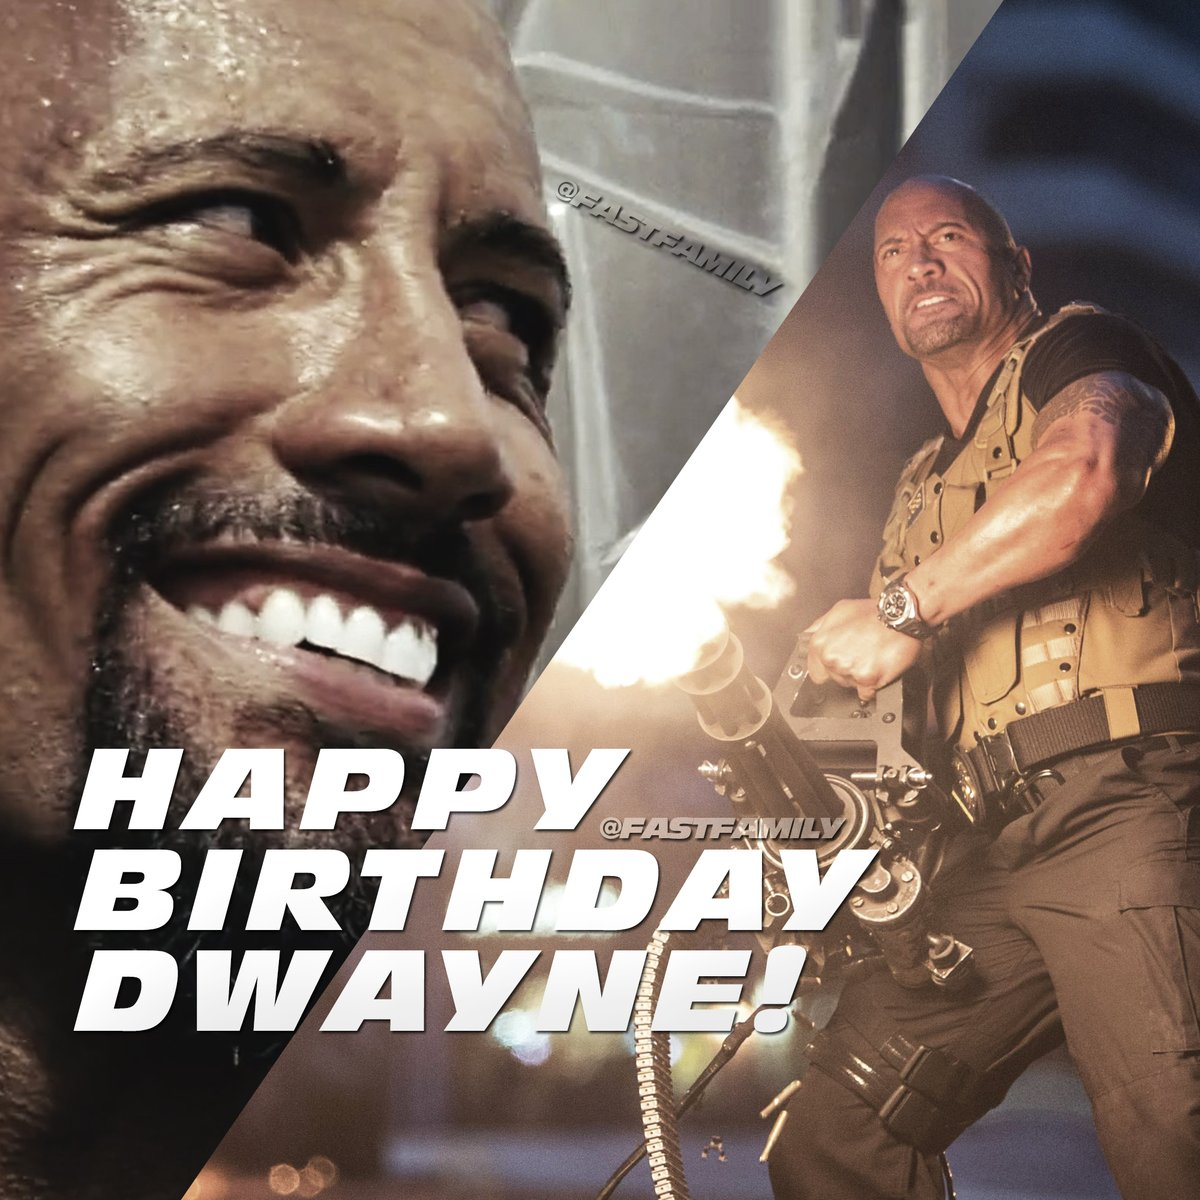 He's what you call an ice cold can of whoop-ass. No matter what happens, — family is forever.  Happy Birthday, Dwayne! @TheRock #LukeHobbs #F9 https://t.co/tipzU2TNQ5